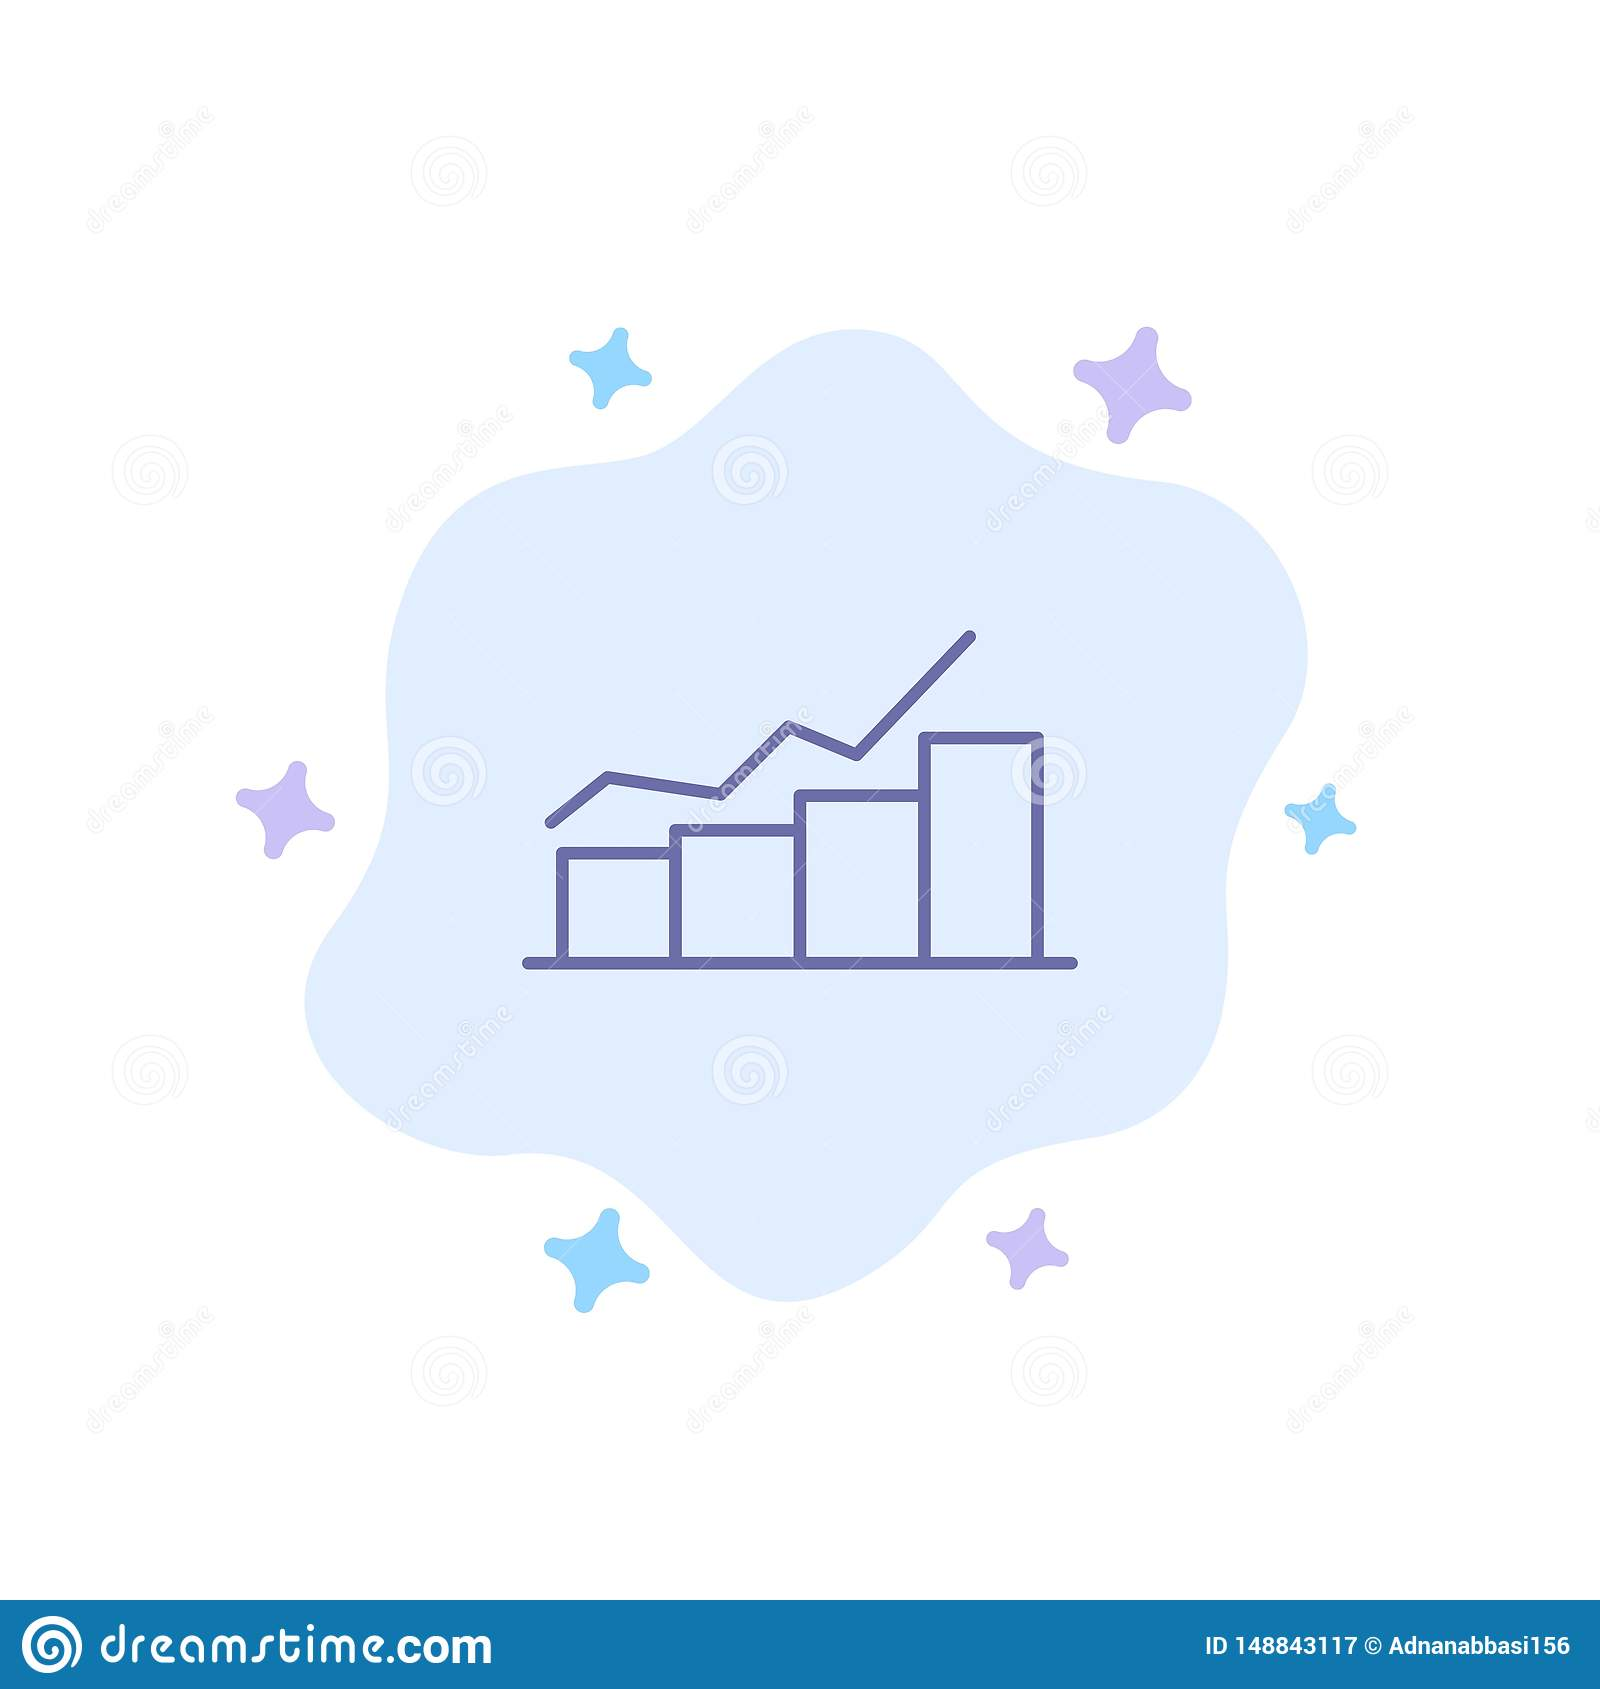 Growth, Chart, Flowchart, Graph, Increase, Progress Blue Icon on Abstract Cloud Background